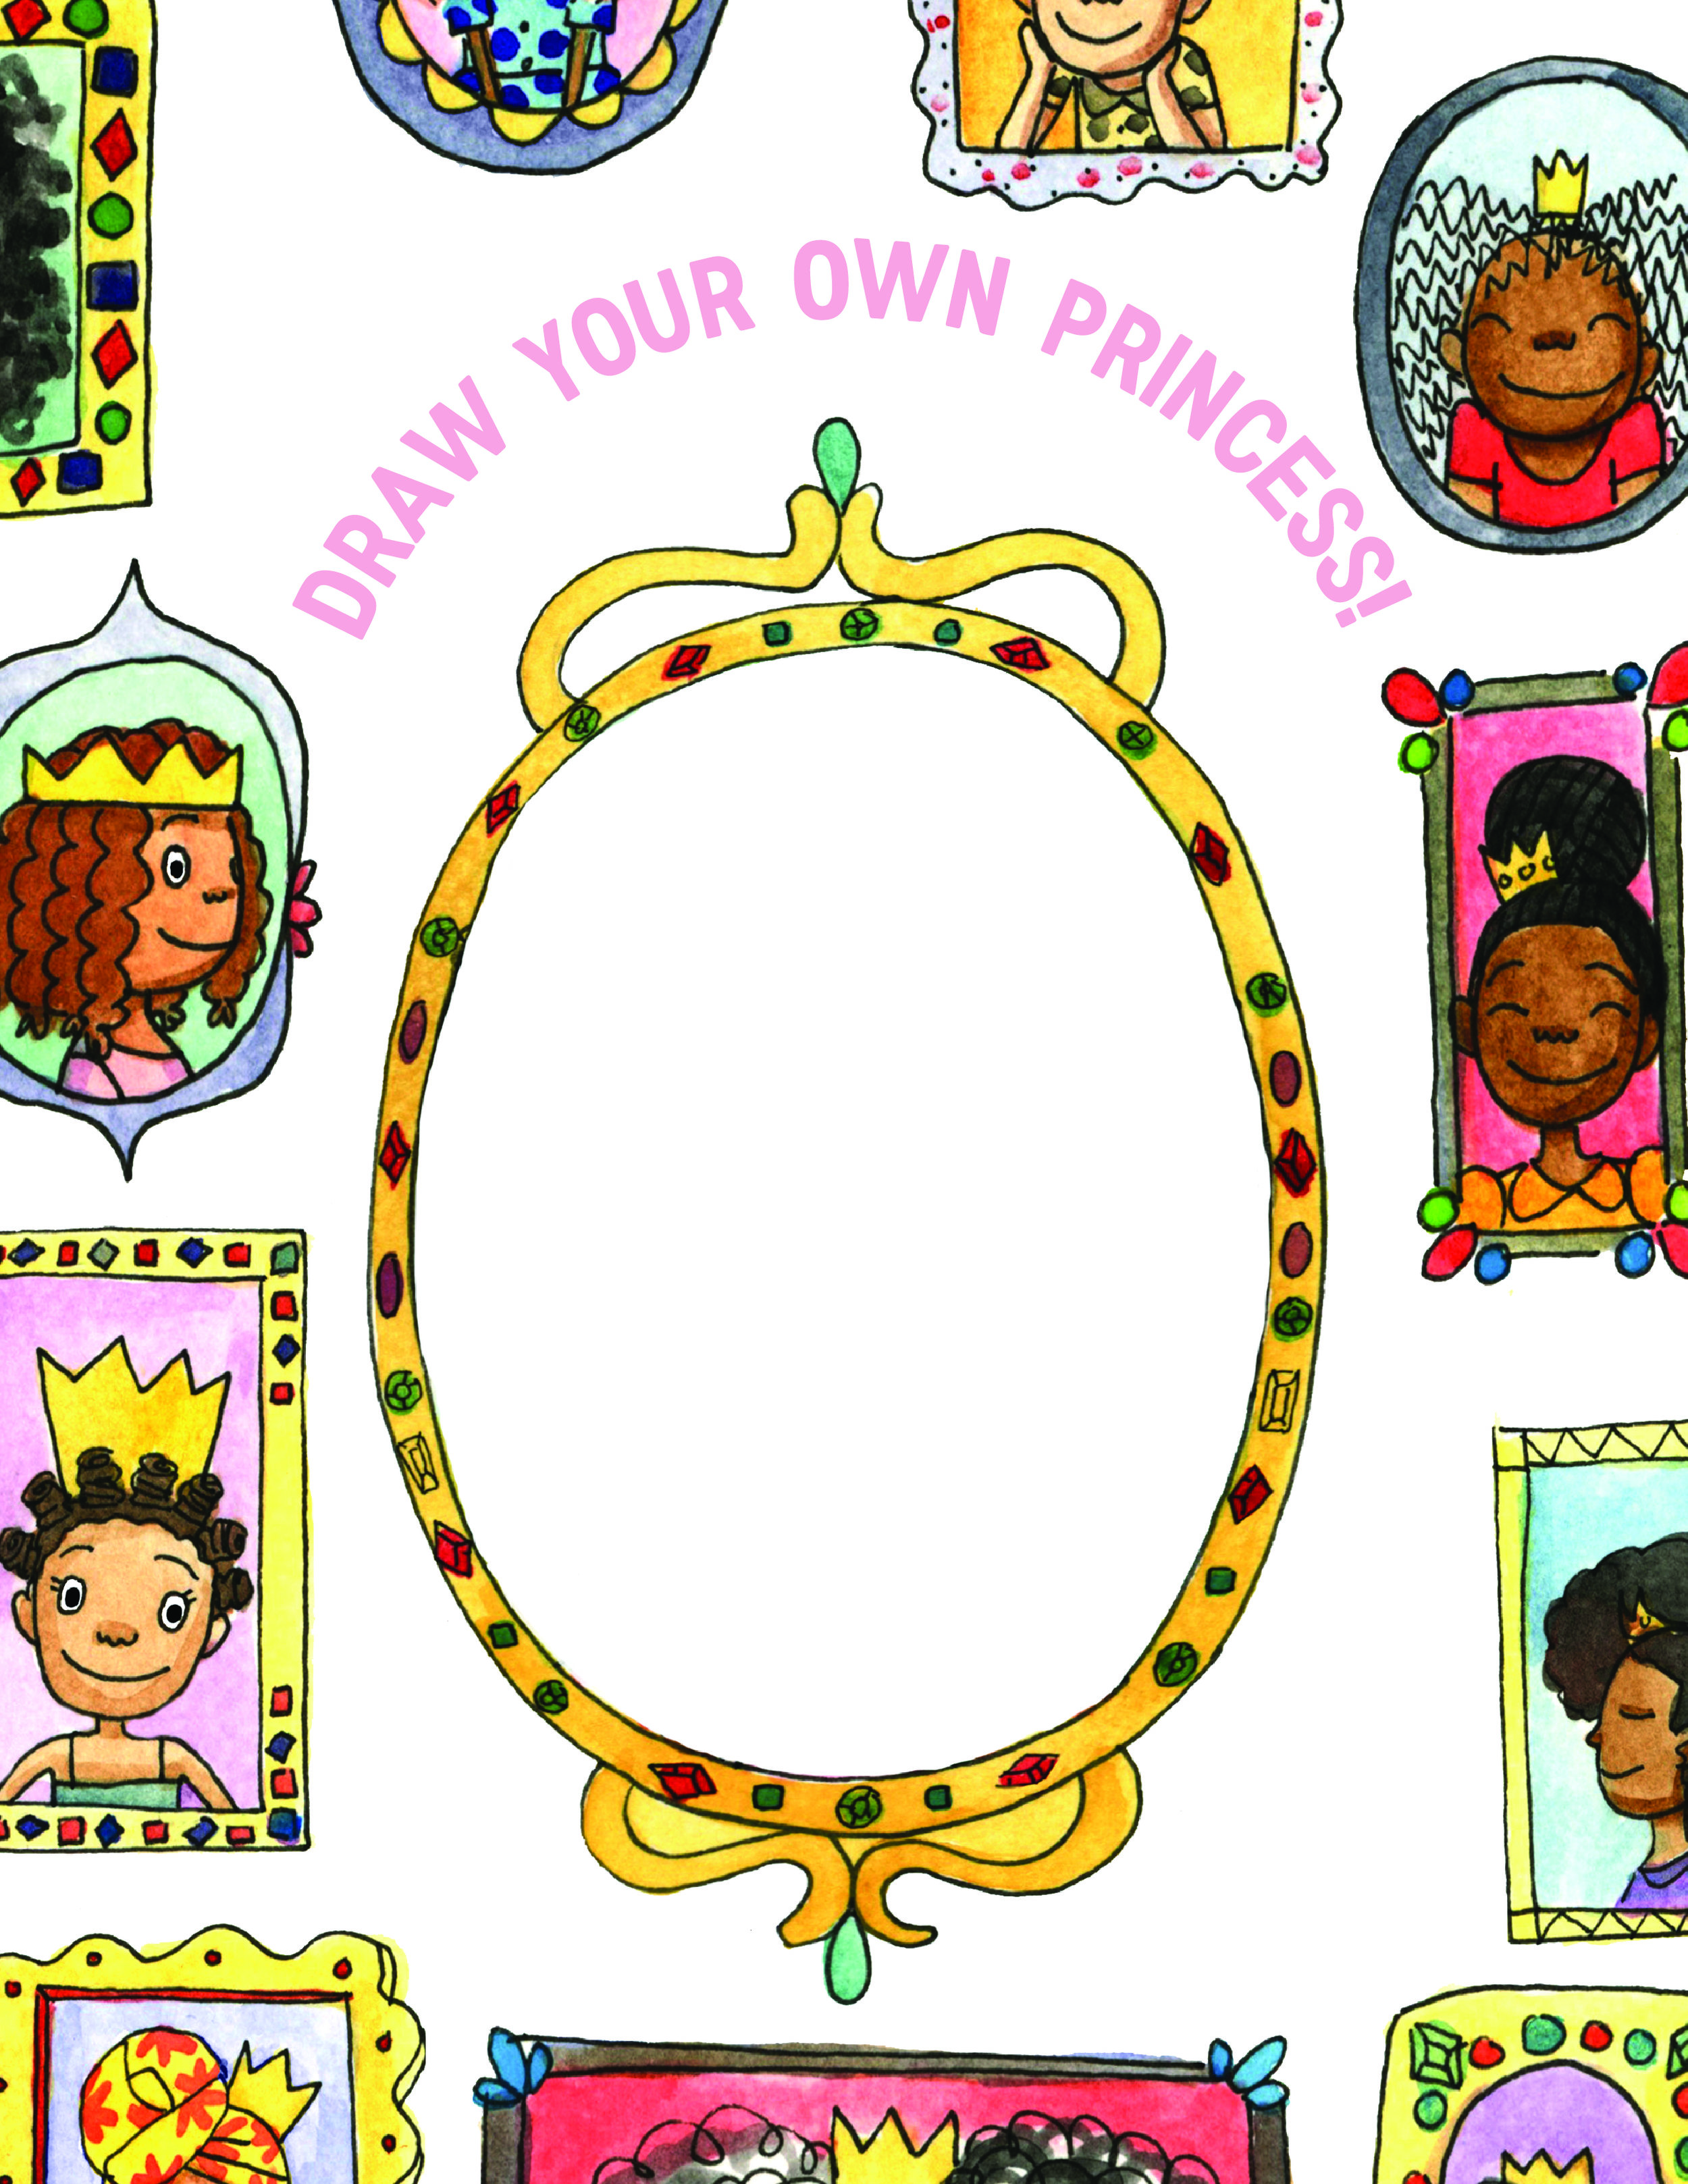 CREATE YOUR OWN PRINCESS! STRECH THOSE CREATIVE MUSCLES AND DRAW YOUR OWN PRINCESS!